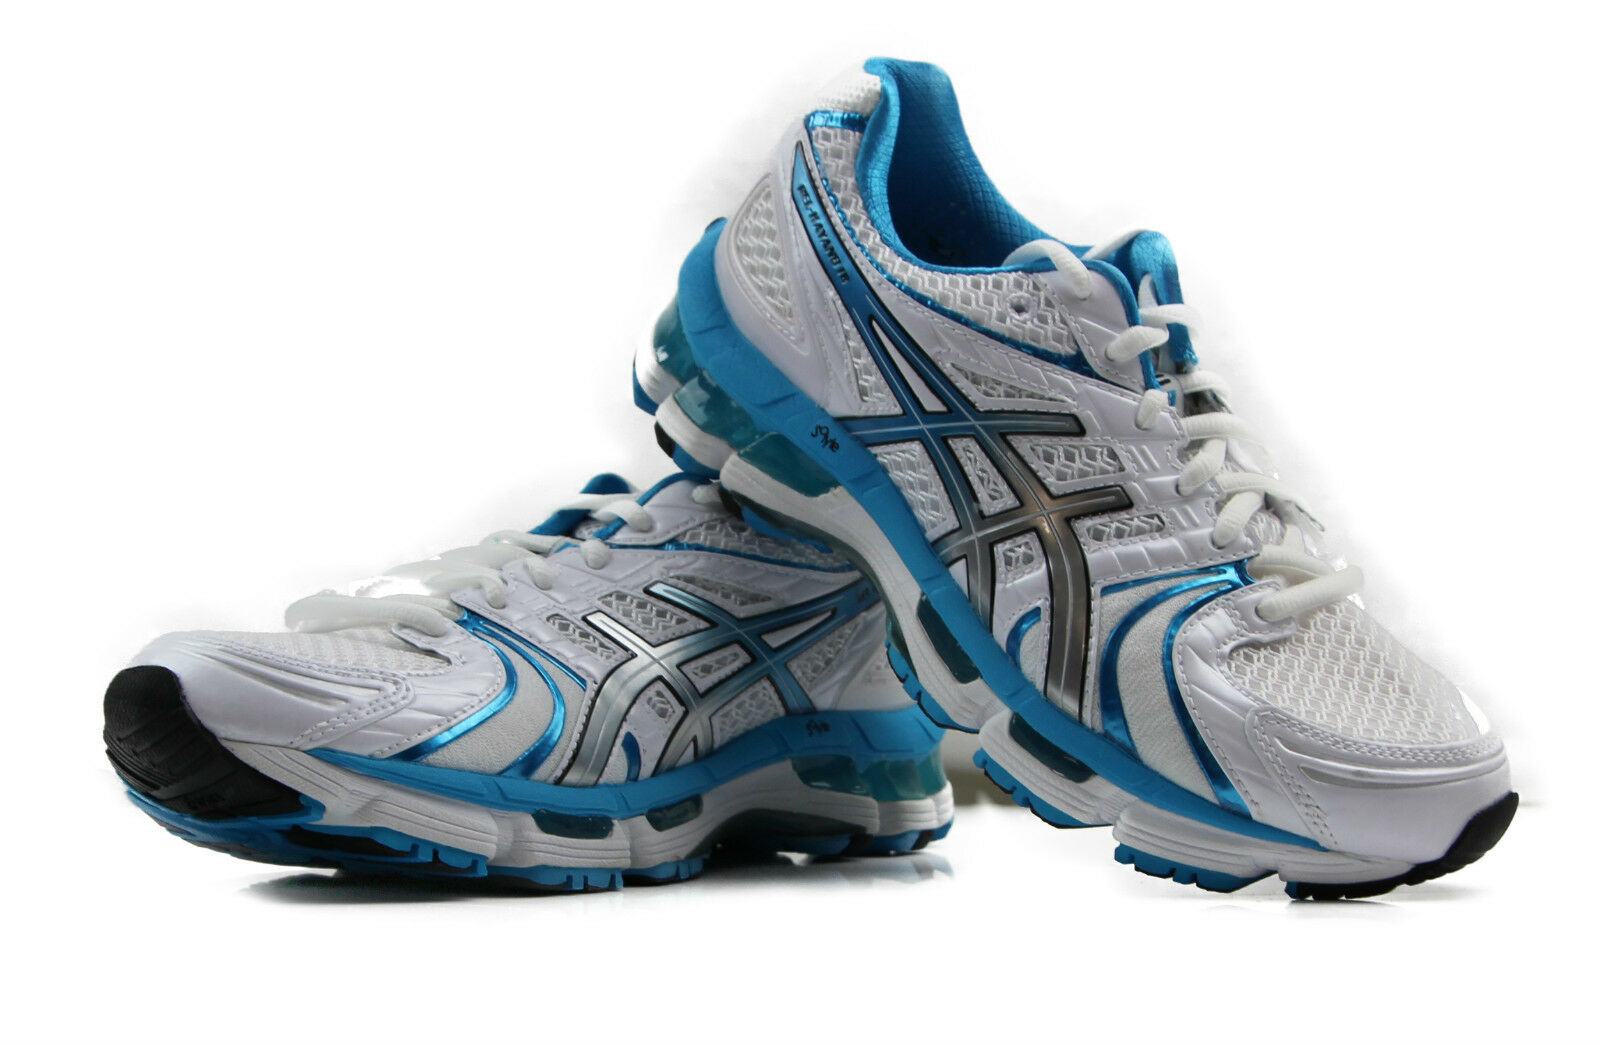 NEW ASICS WOMENS KAYANO 18 RUNNING SHOES - D WIDTH = WIDE WIDTH FOR LADIES New shoes for men and women, limited time discount